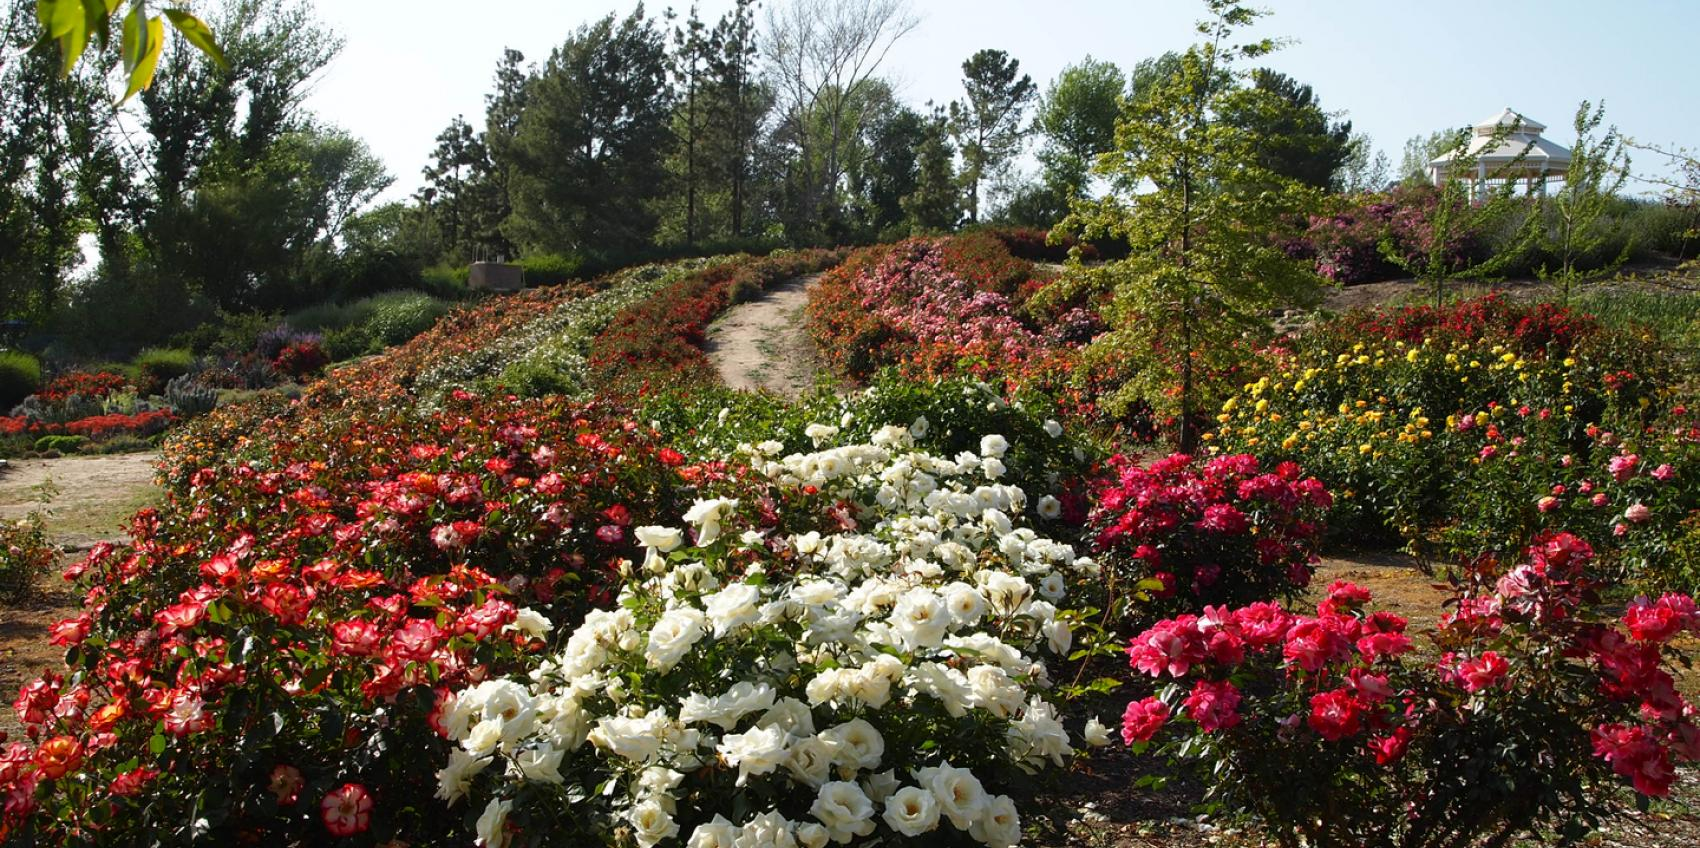 Lovely heritage rose garden images landscaping ideas for for Garden information sites